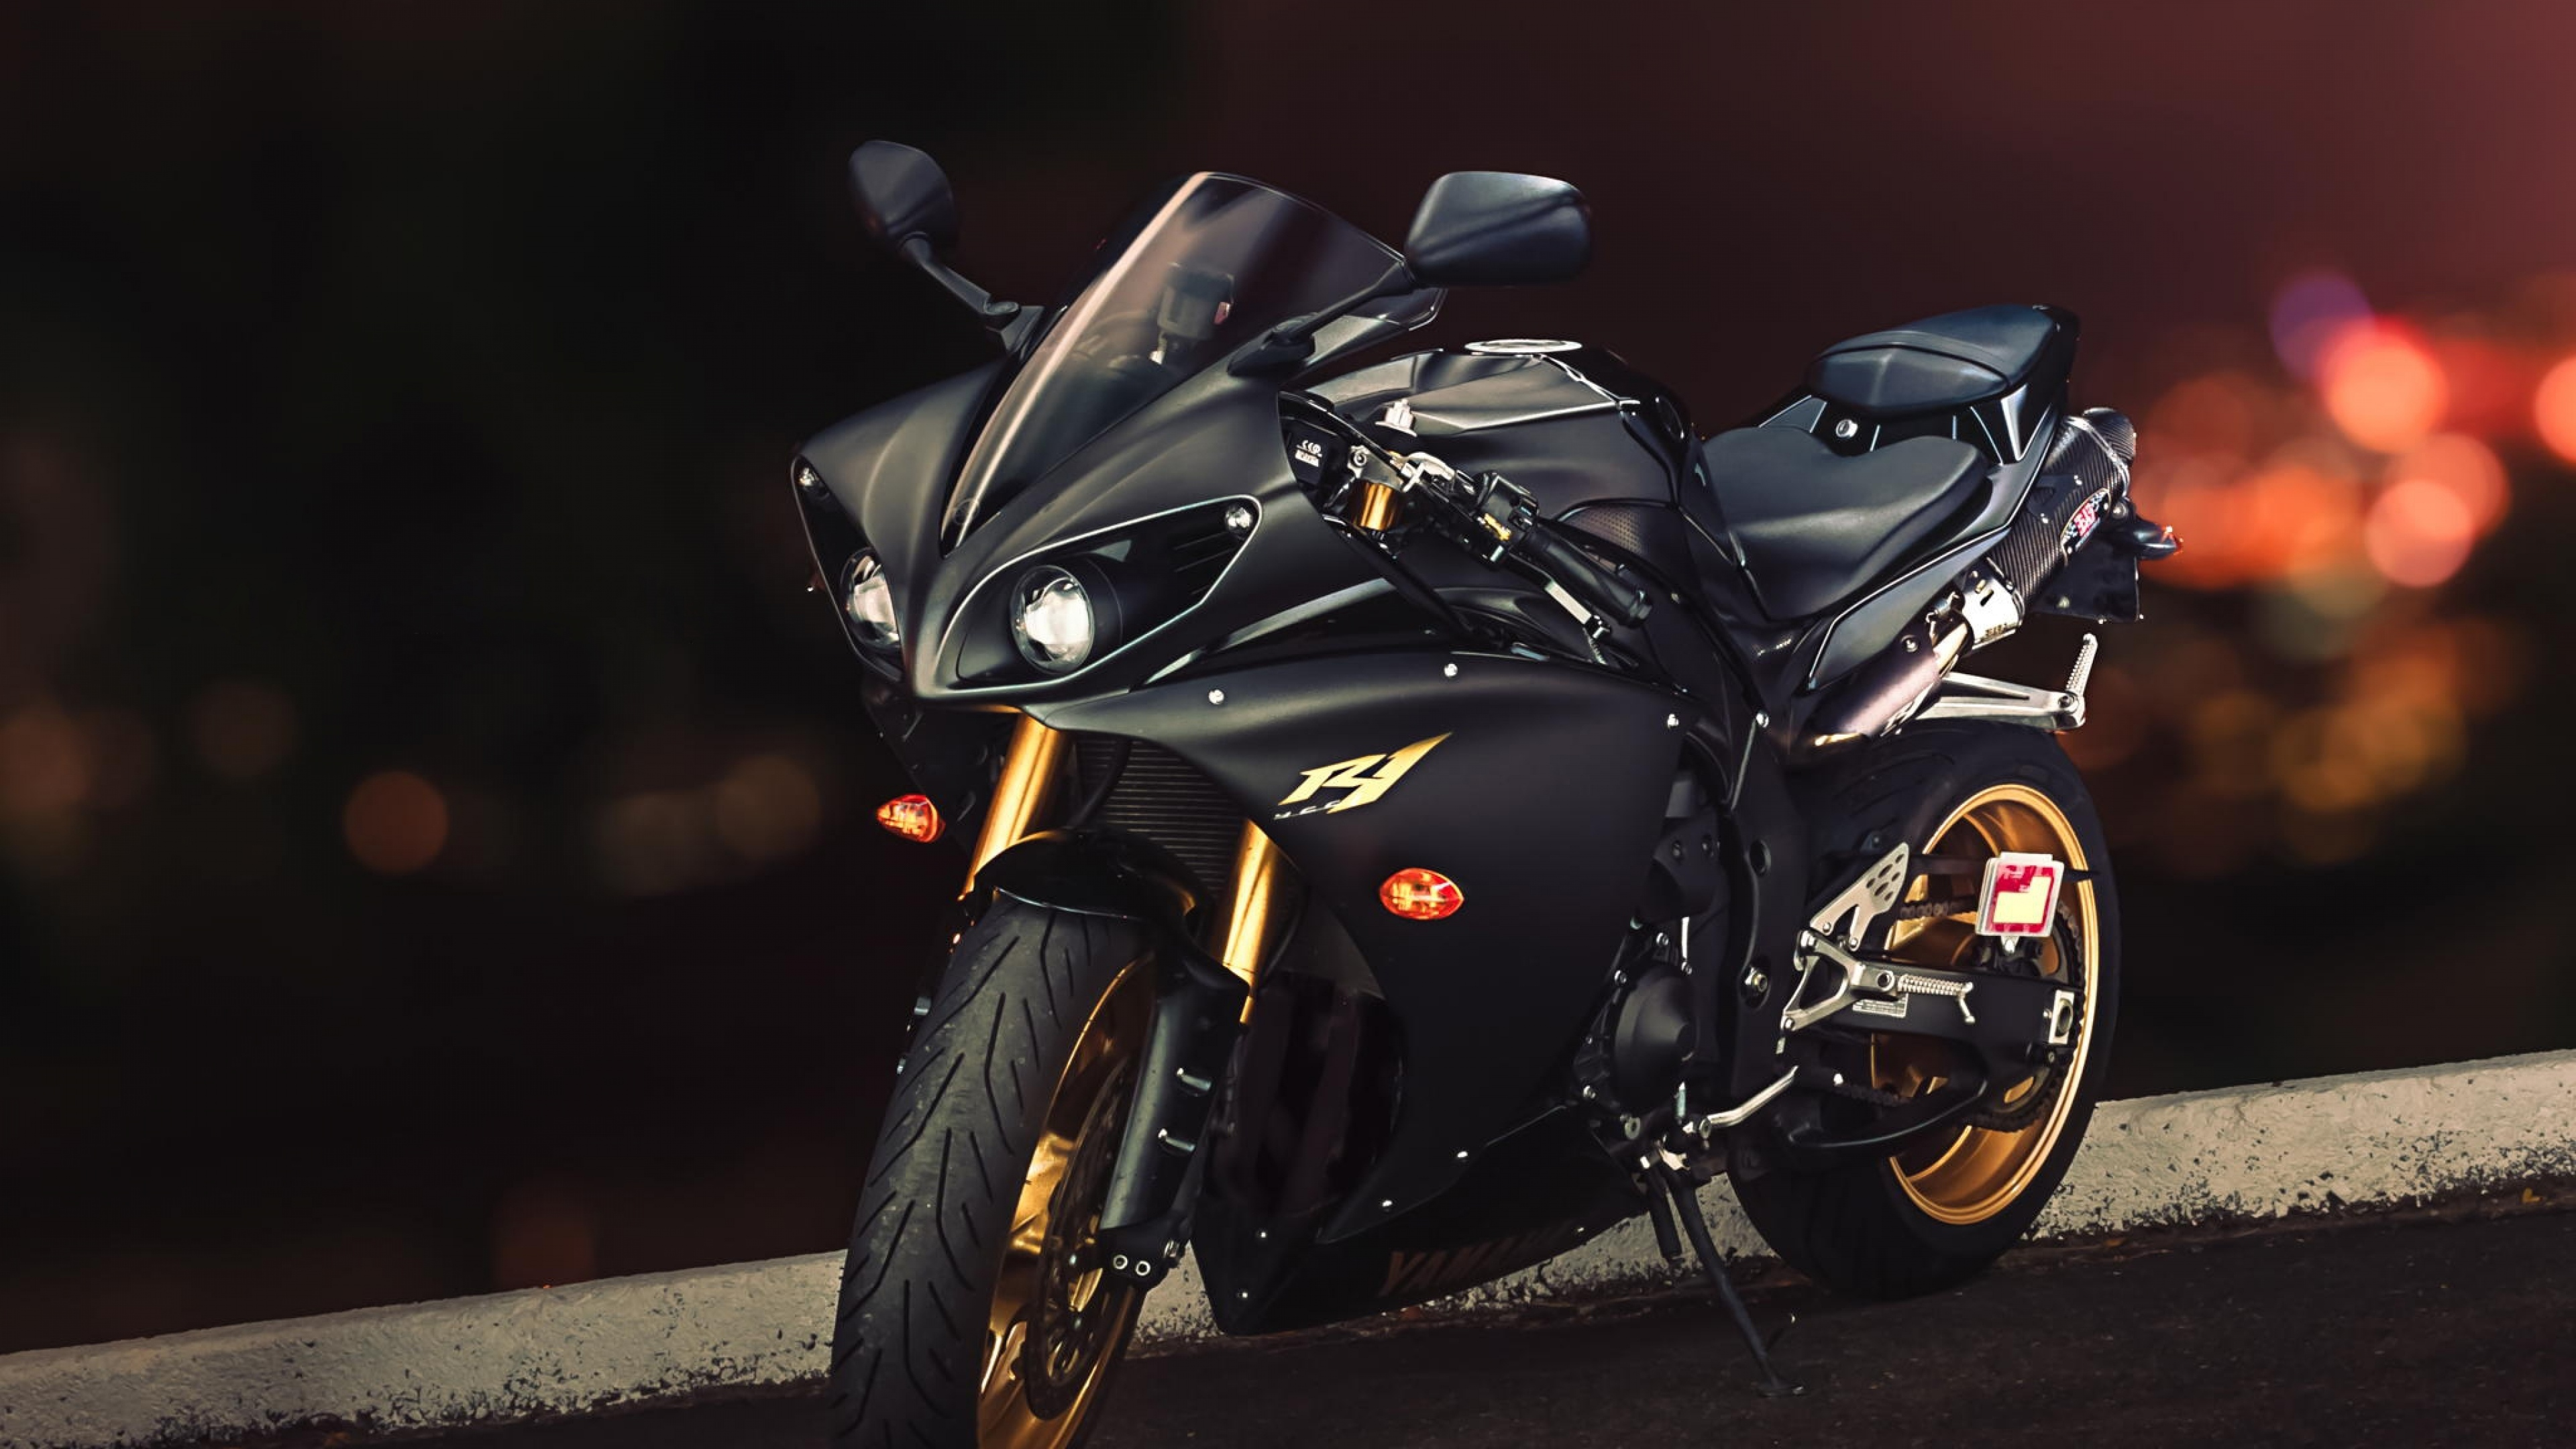 yamaha r1, hd bikes, 4k wallpapers, images, backgrounds, photos and